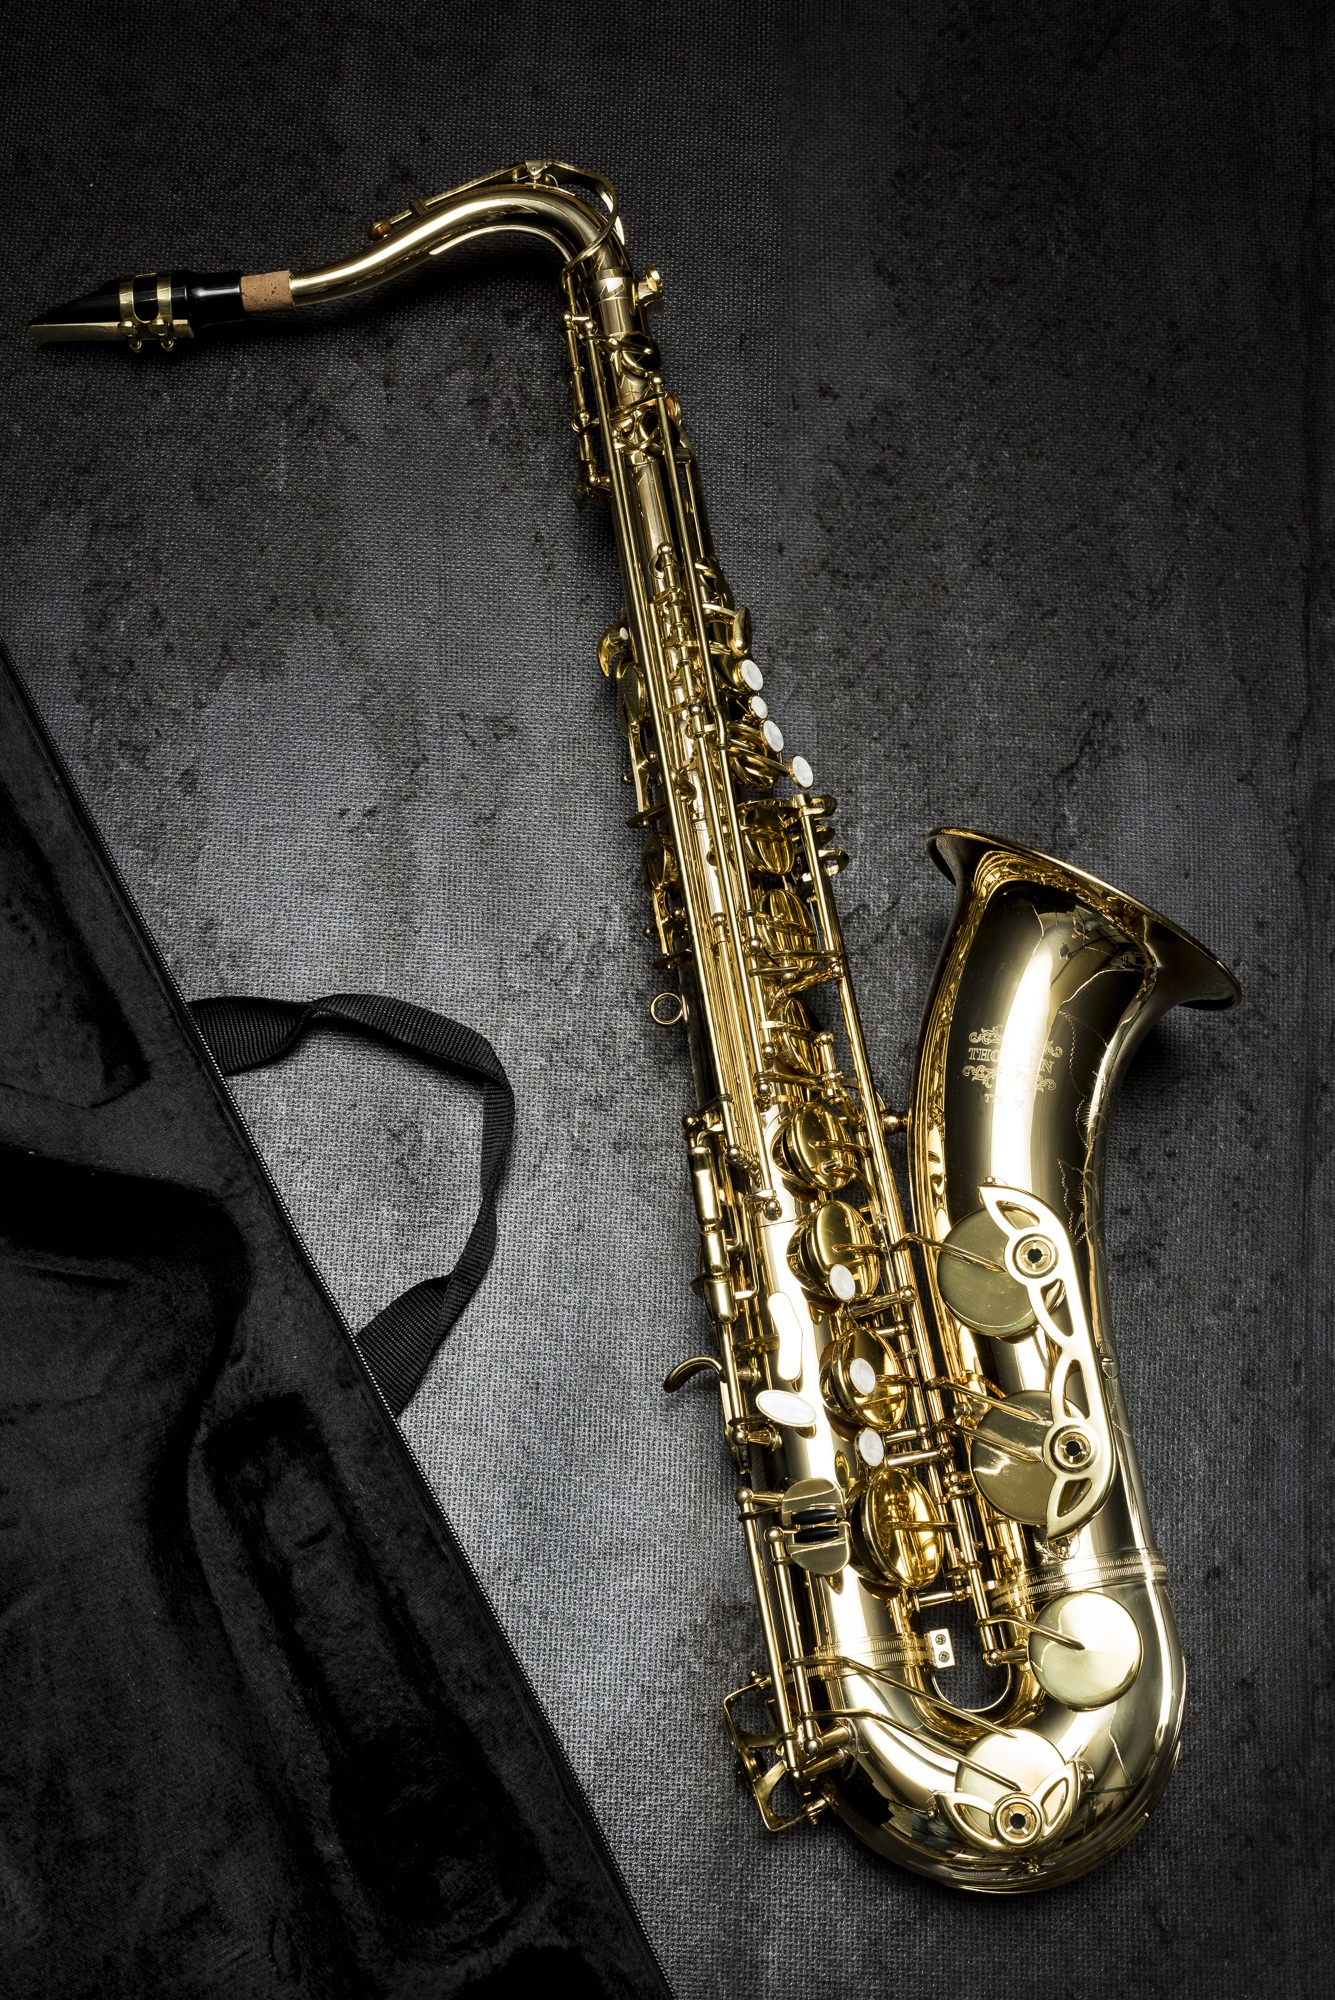 Black Wallpaper Iphone 6 Person Holding Saxophone In Gray Scale Photography 183 Free